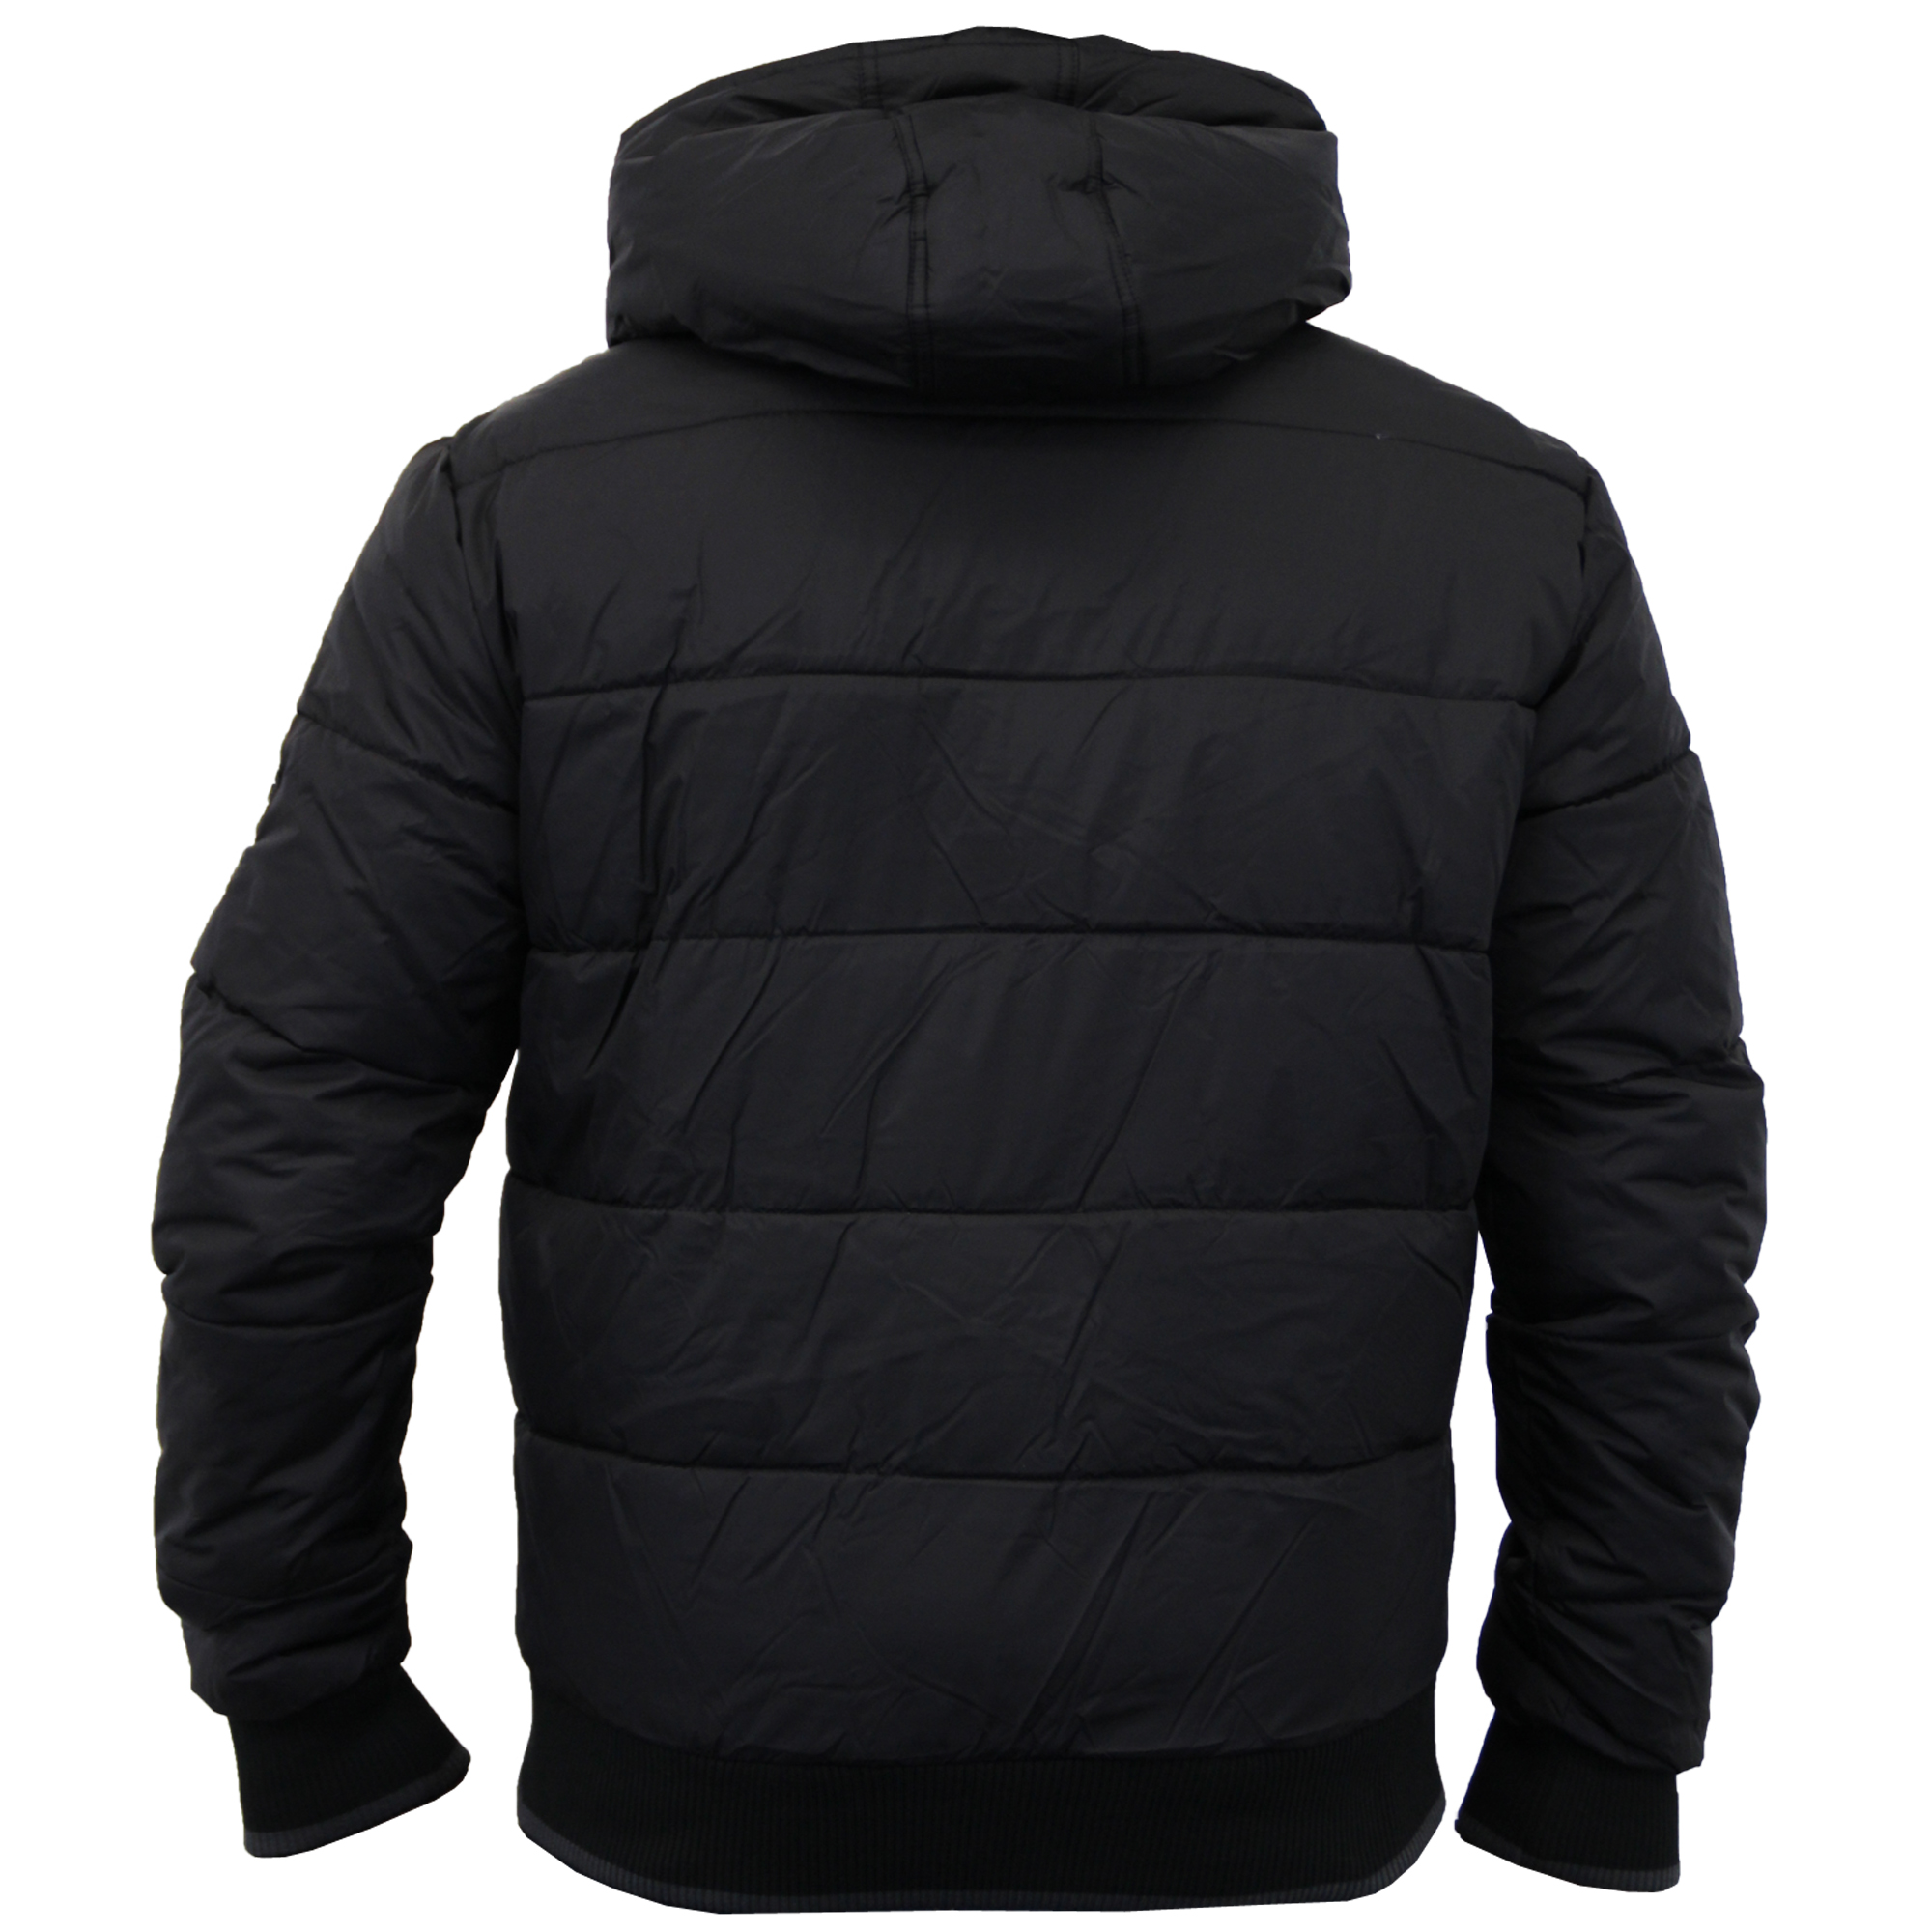 Shop mens quilted puffer jacket at Neiman Marcus, where you will find free shipping on the latest in fashion from top designers.